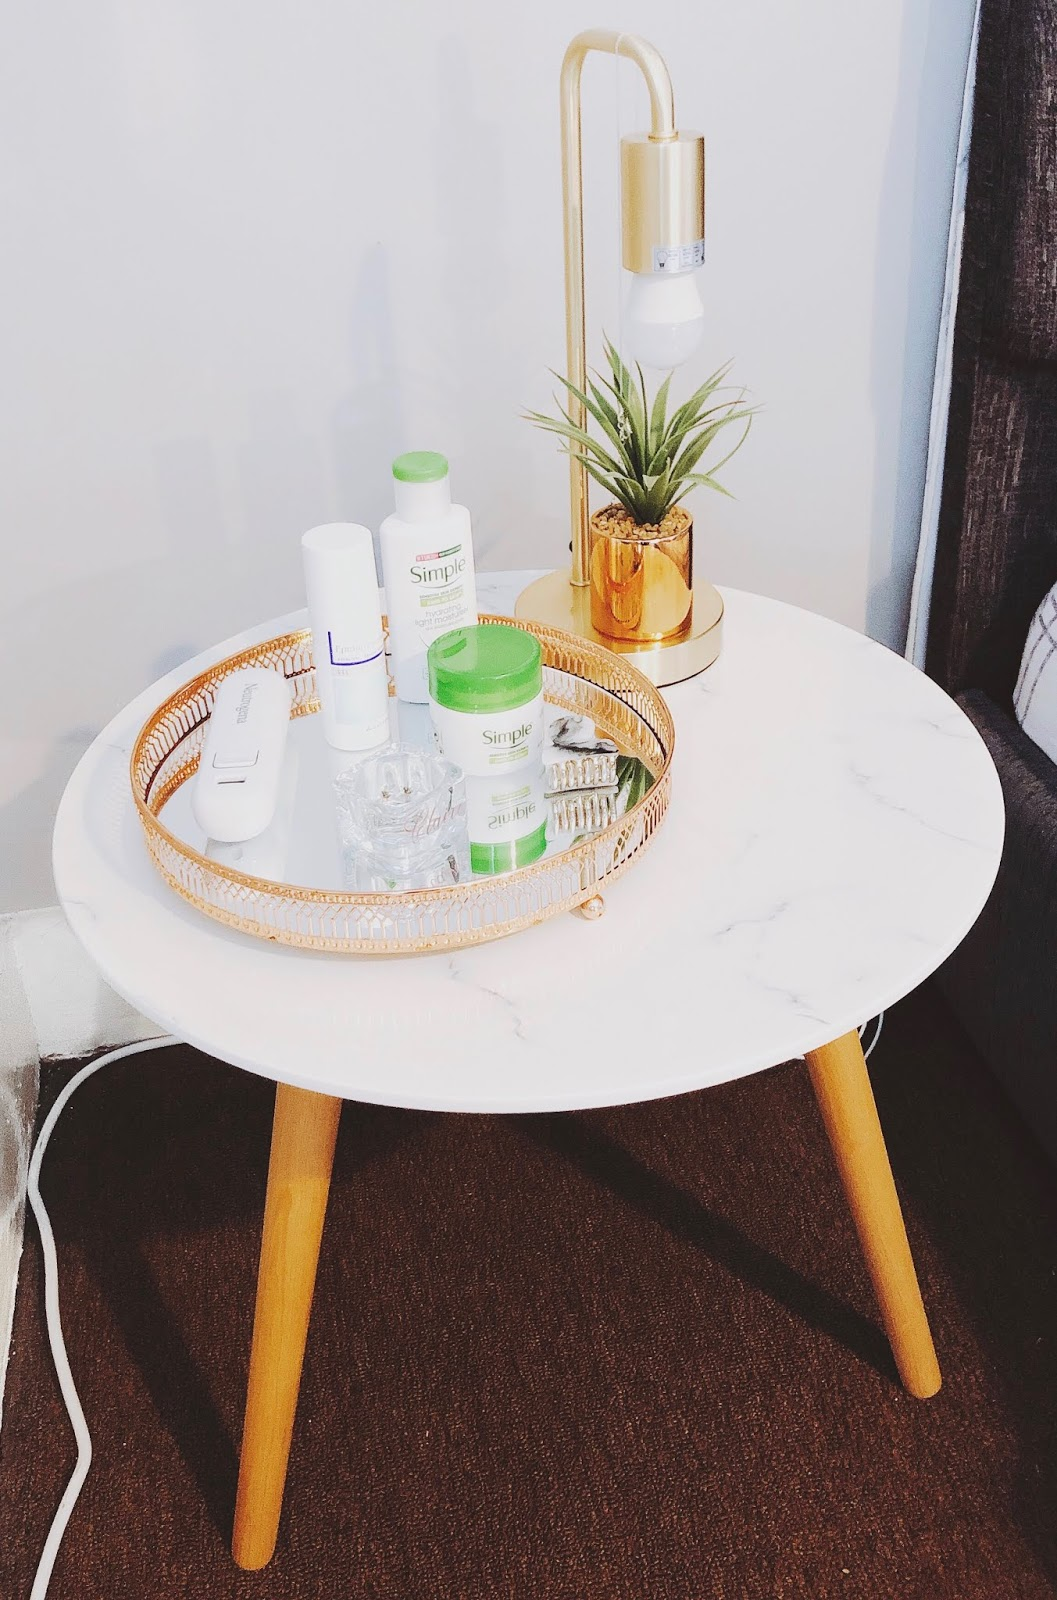 b&m, table, bedside table, bedside